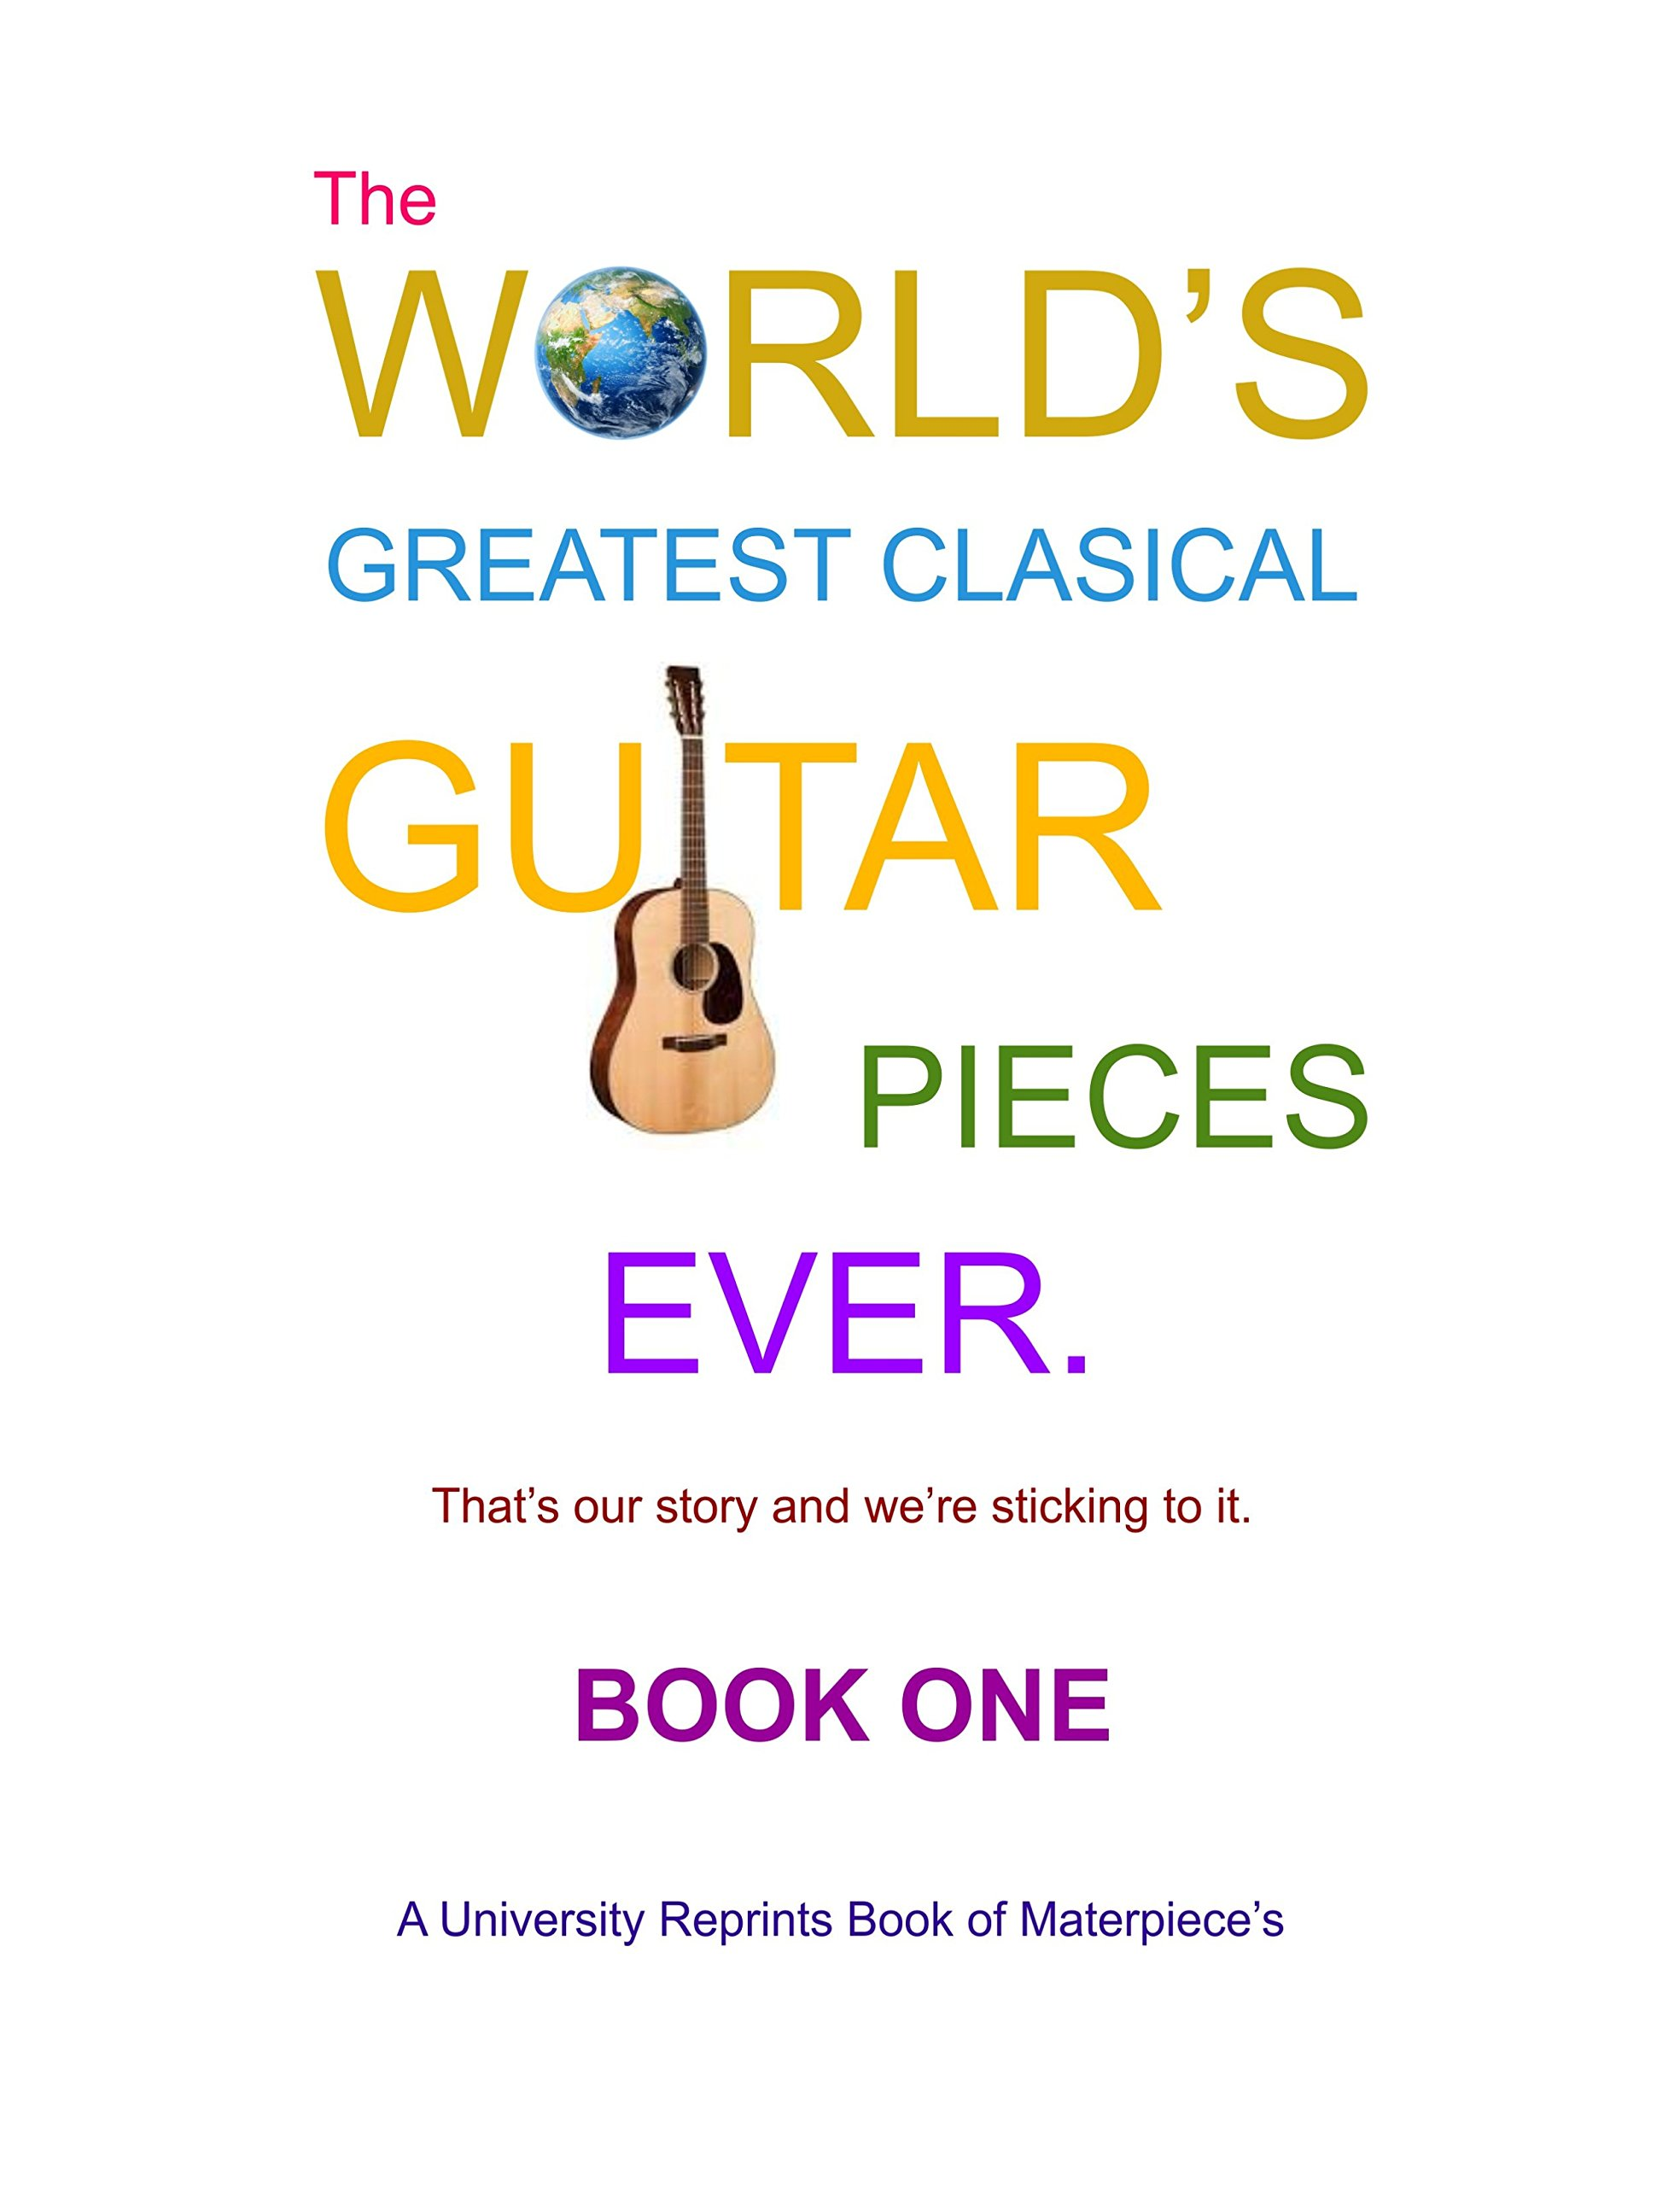 Download The World's Greatest Classical Guitar Pieces Book One Ever! [Pieces Beautifully Re-Imaged from Originals for Greater Clarity. Student Loose Leaf Facsimile Edition. 2017] PDF